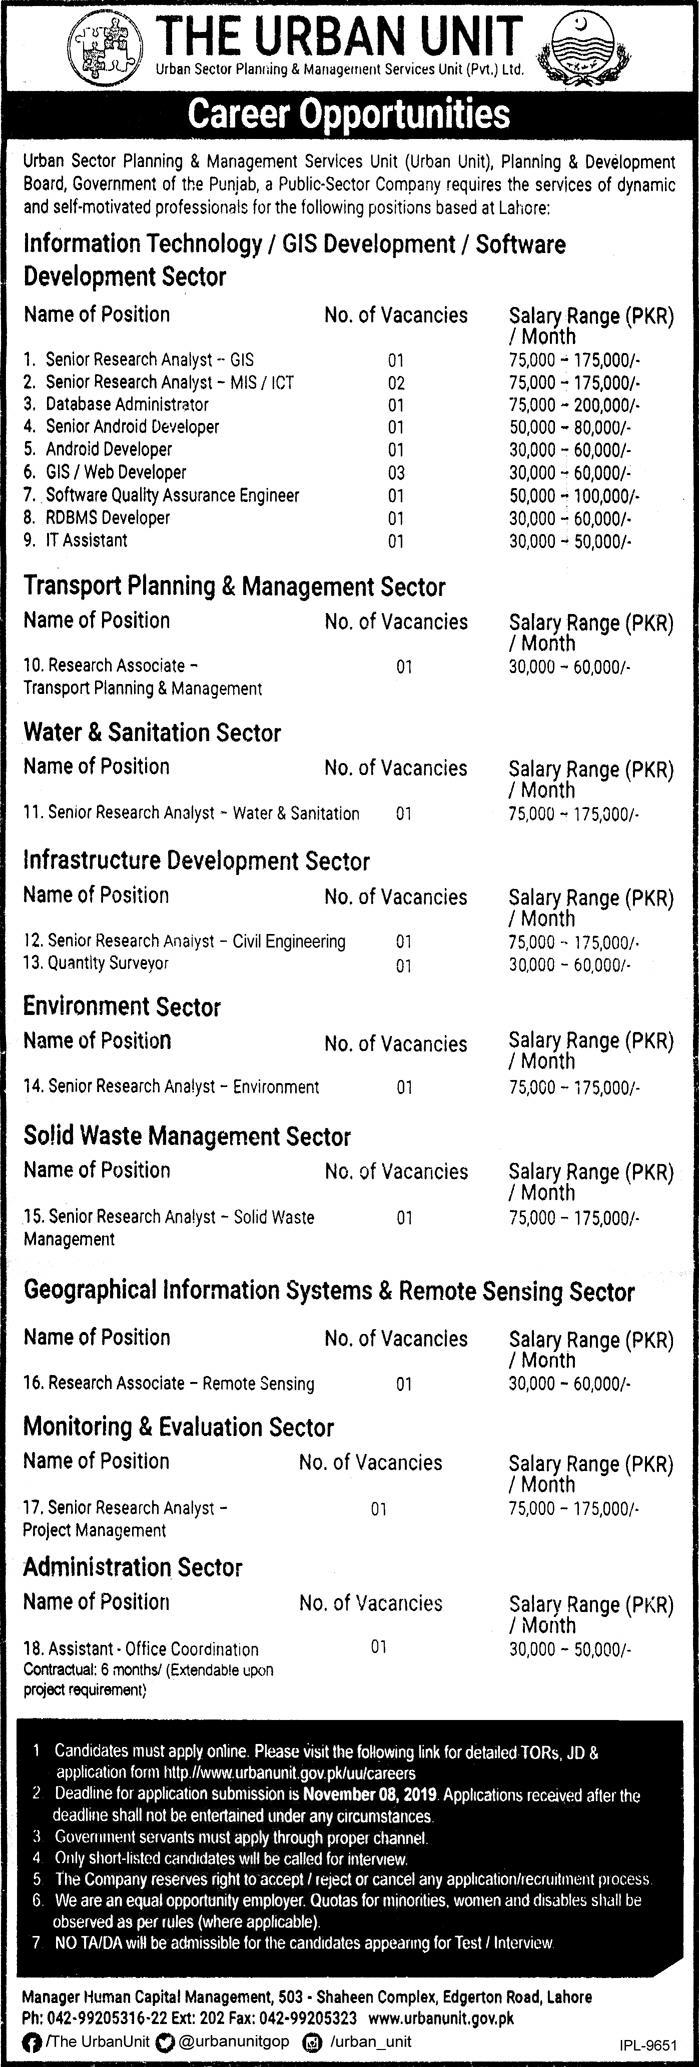 Vacancies in Urban Unit Planning